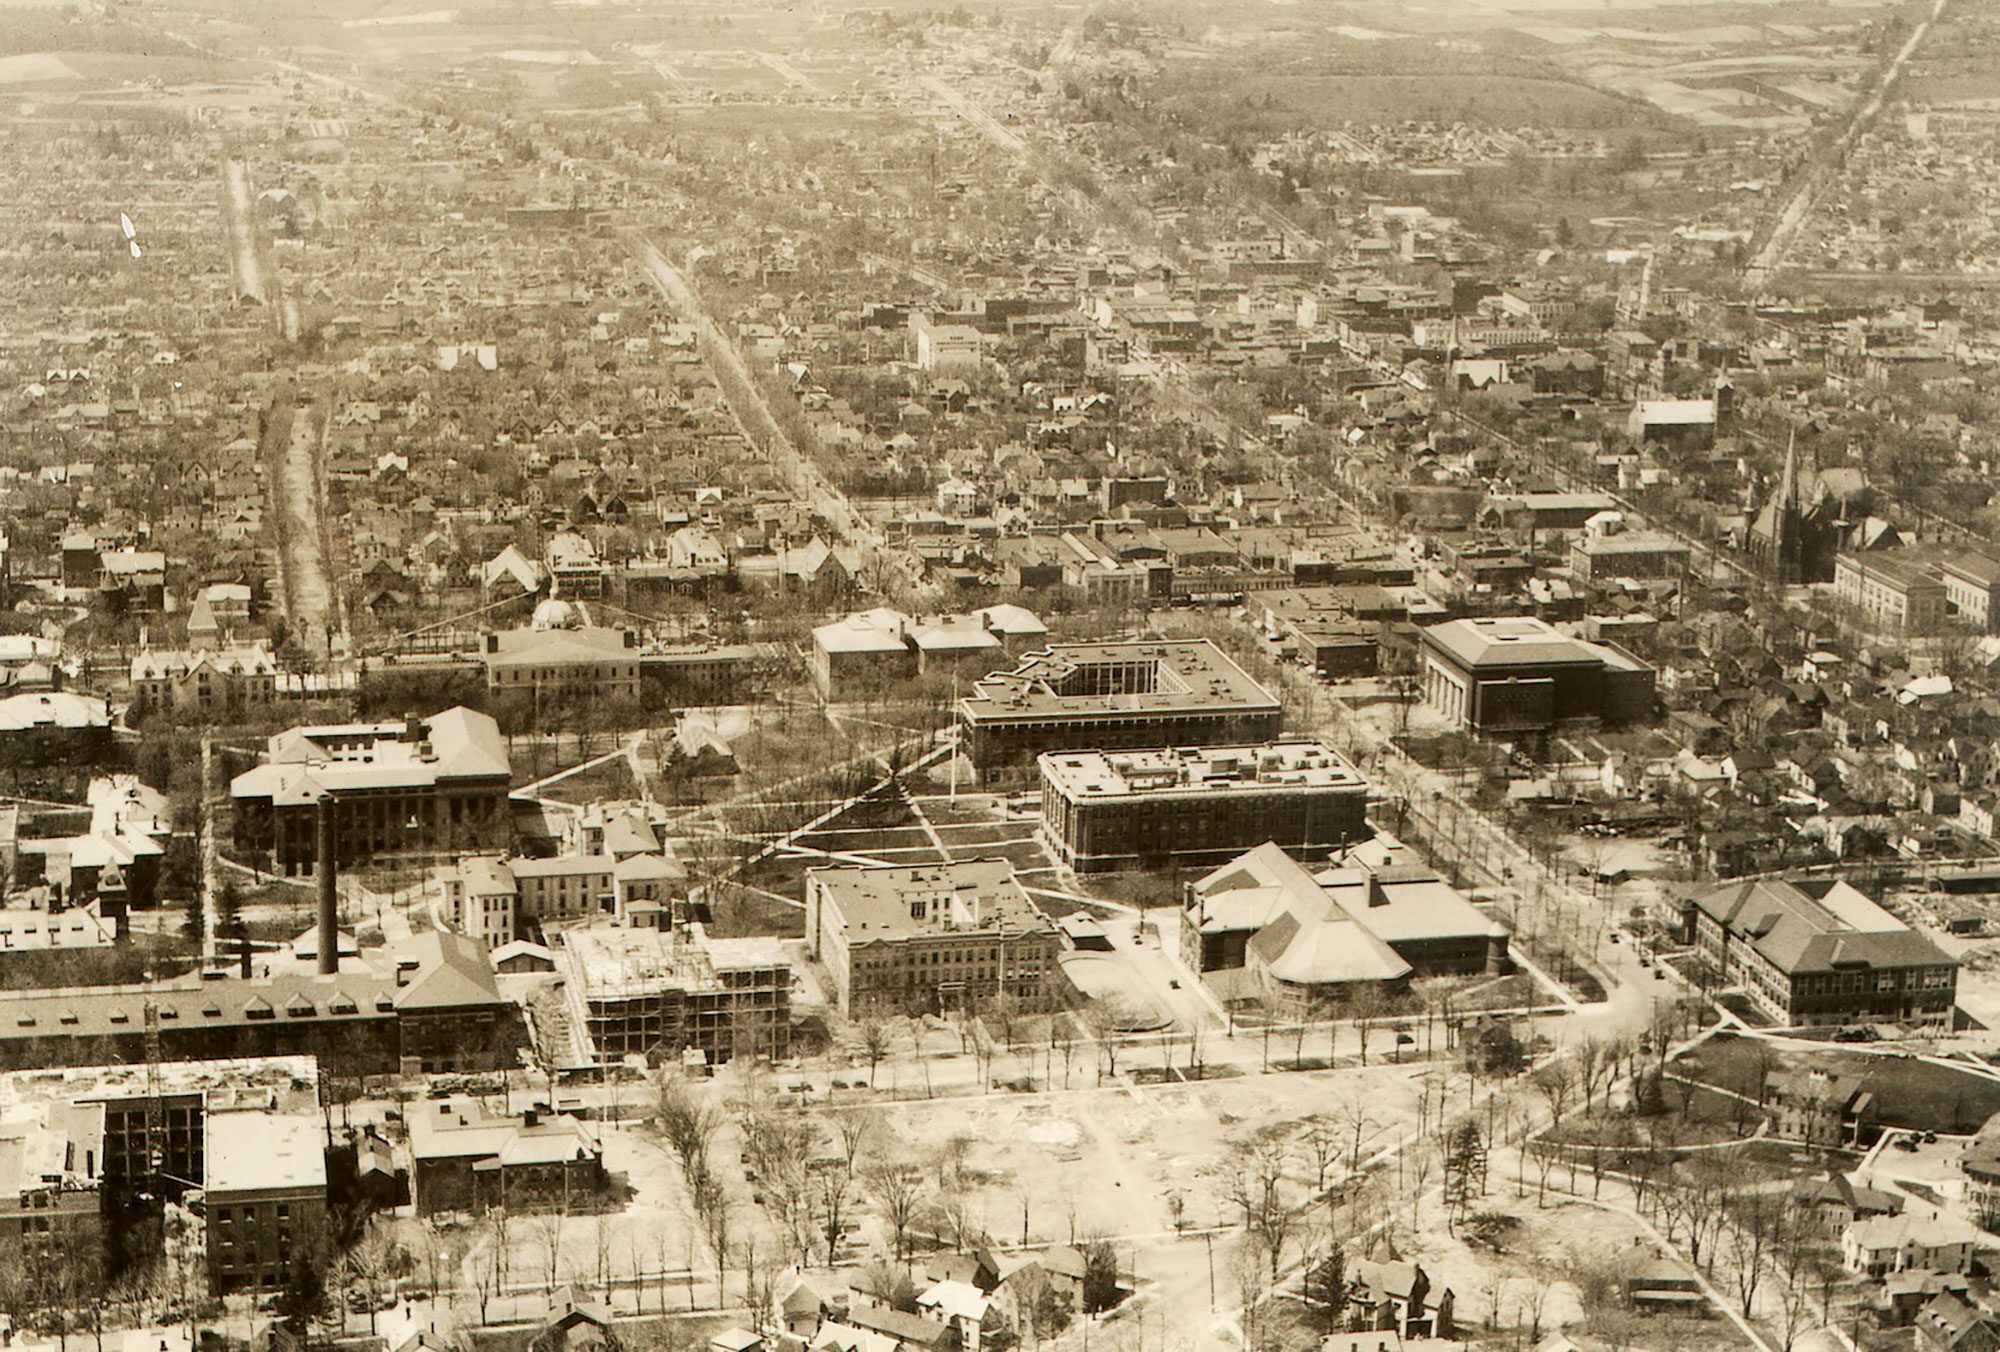 The University of Michigan campus and Ann Arbor, 1924.